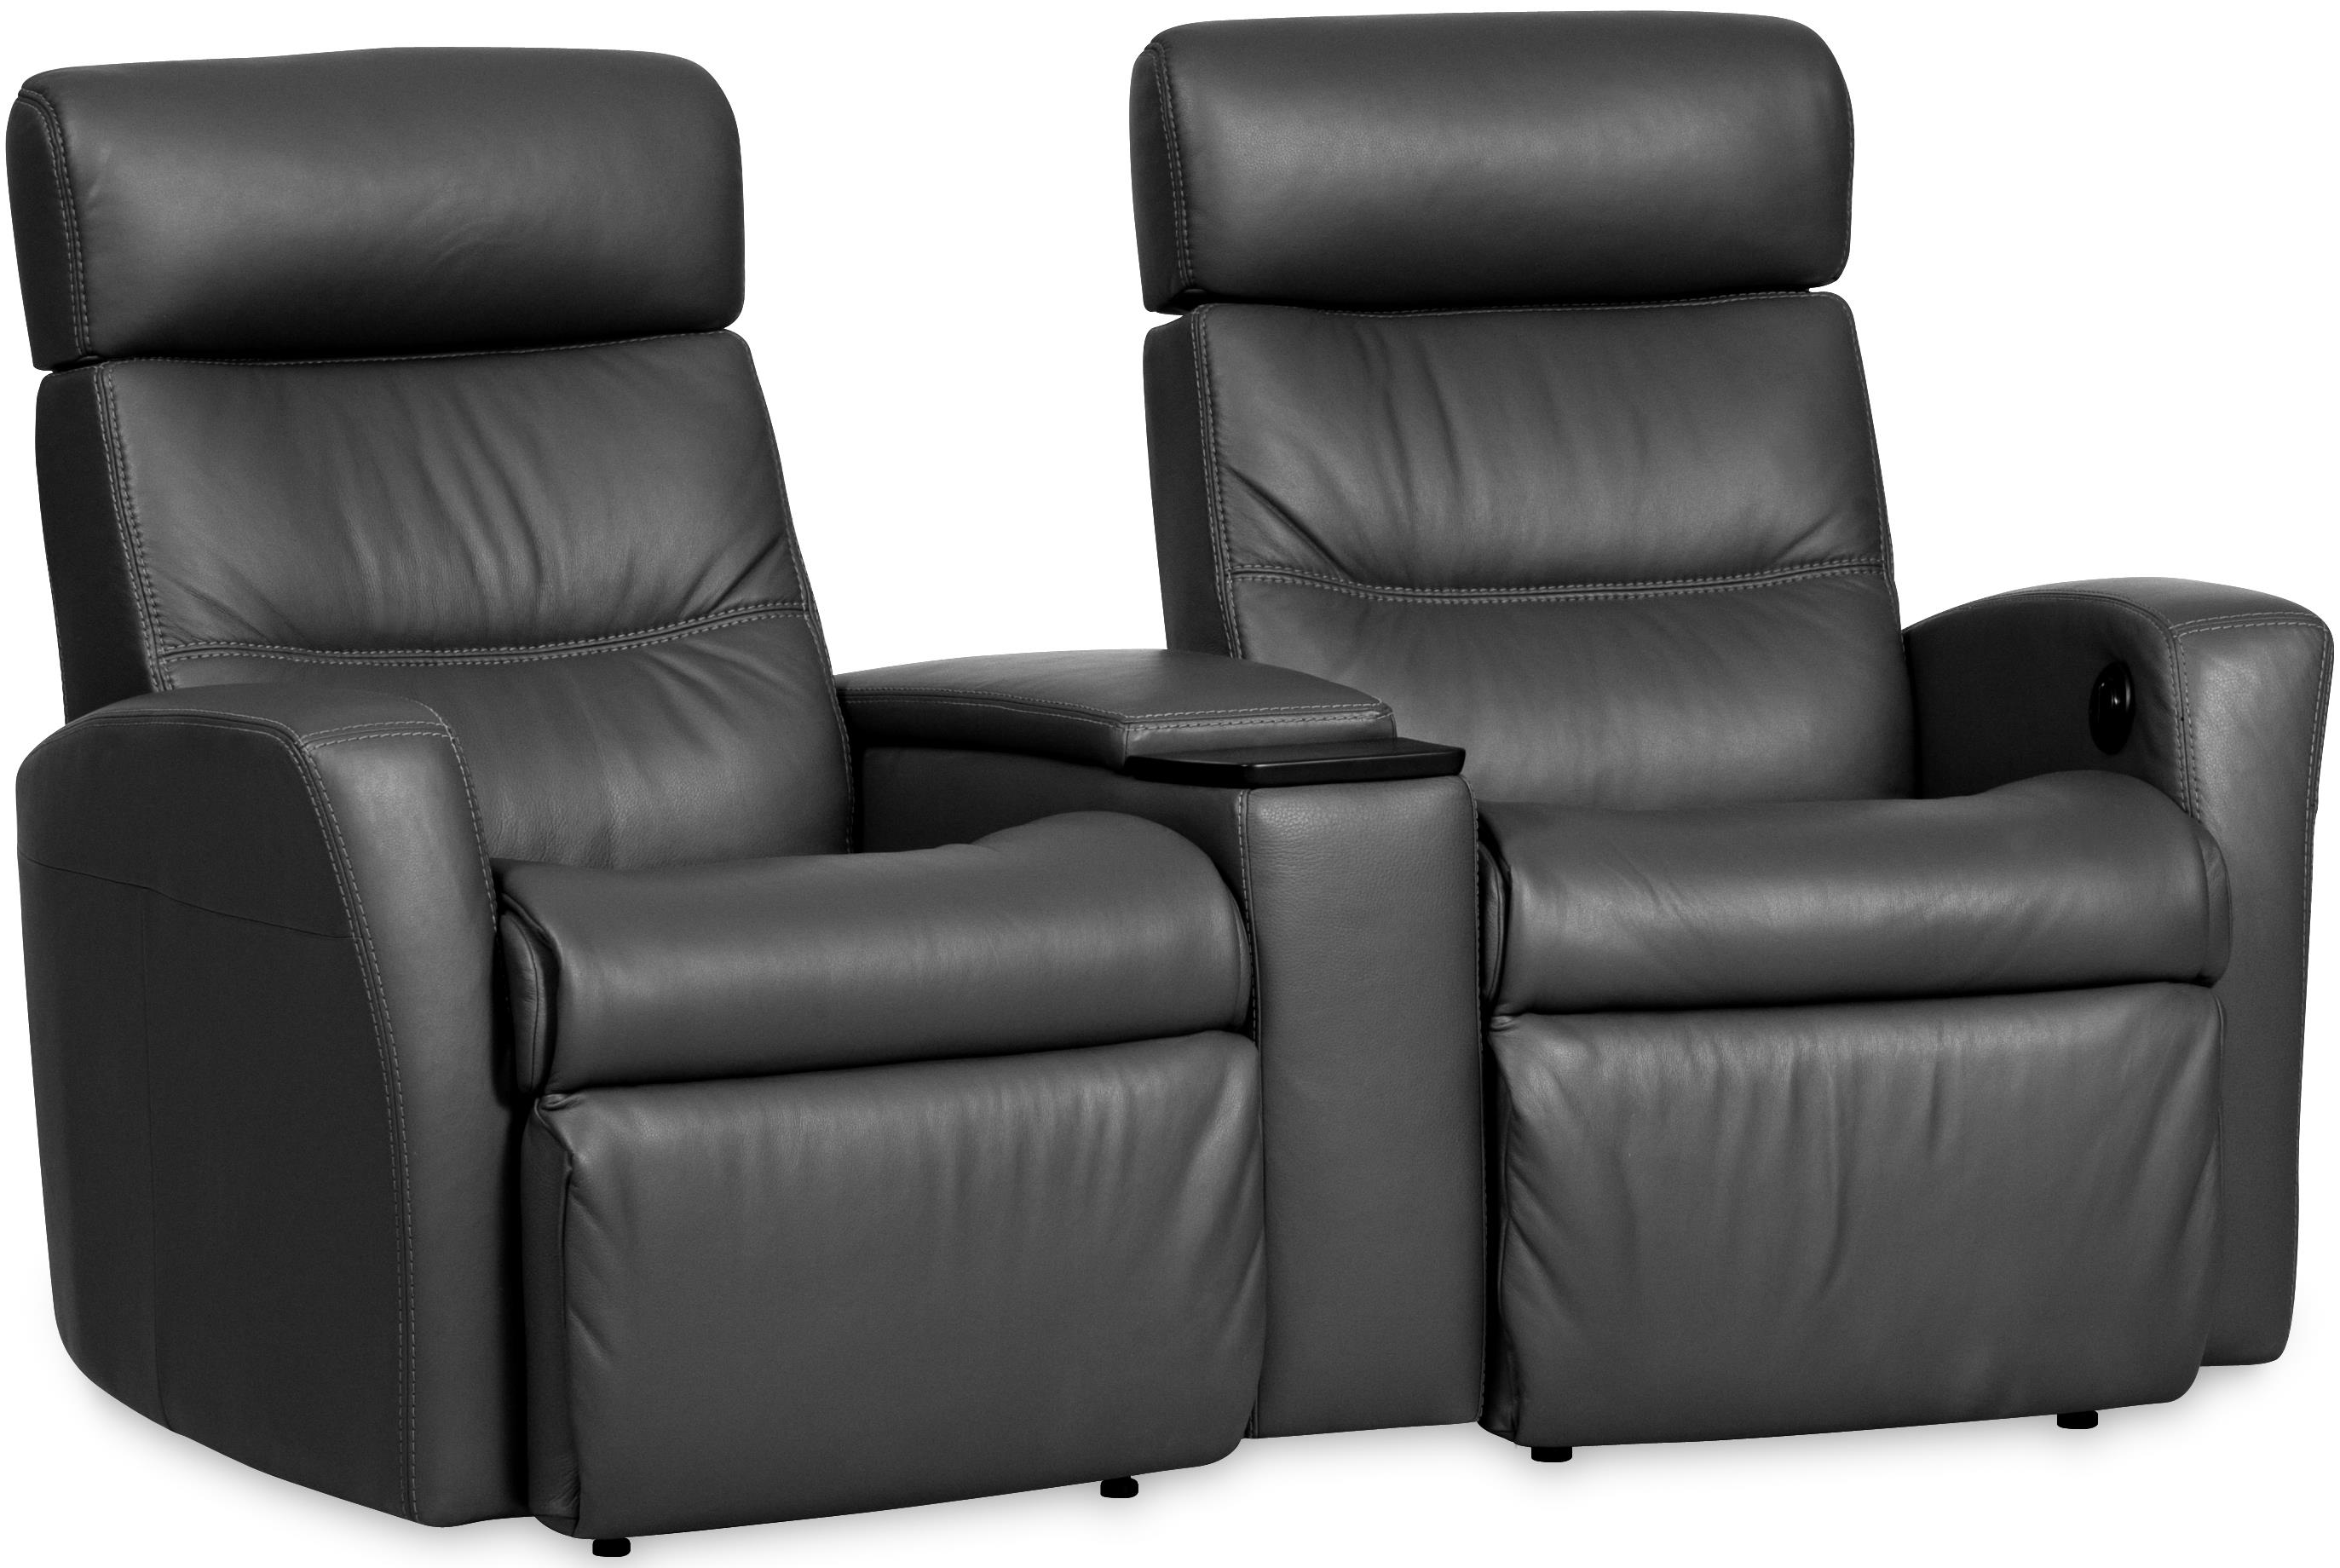 home theater chairs canada designer bar img norway divani seating with storage console